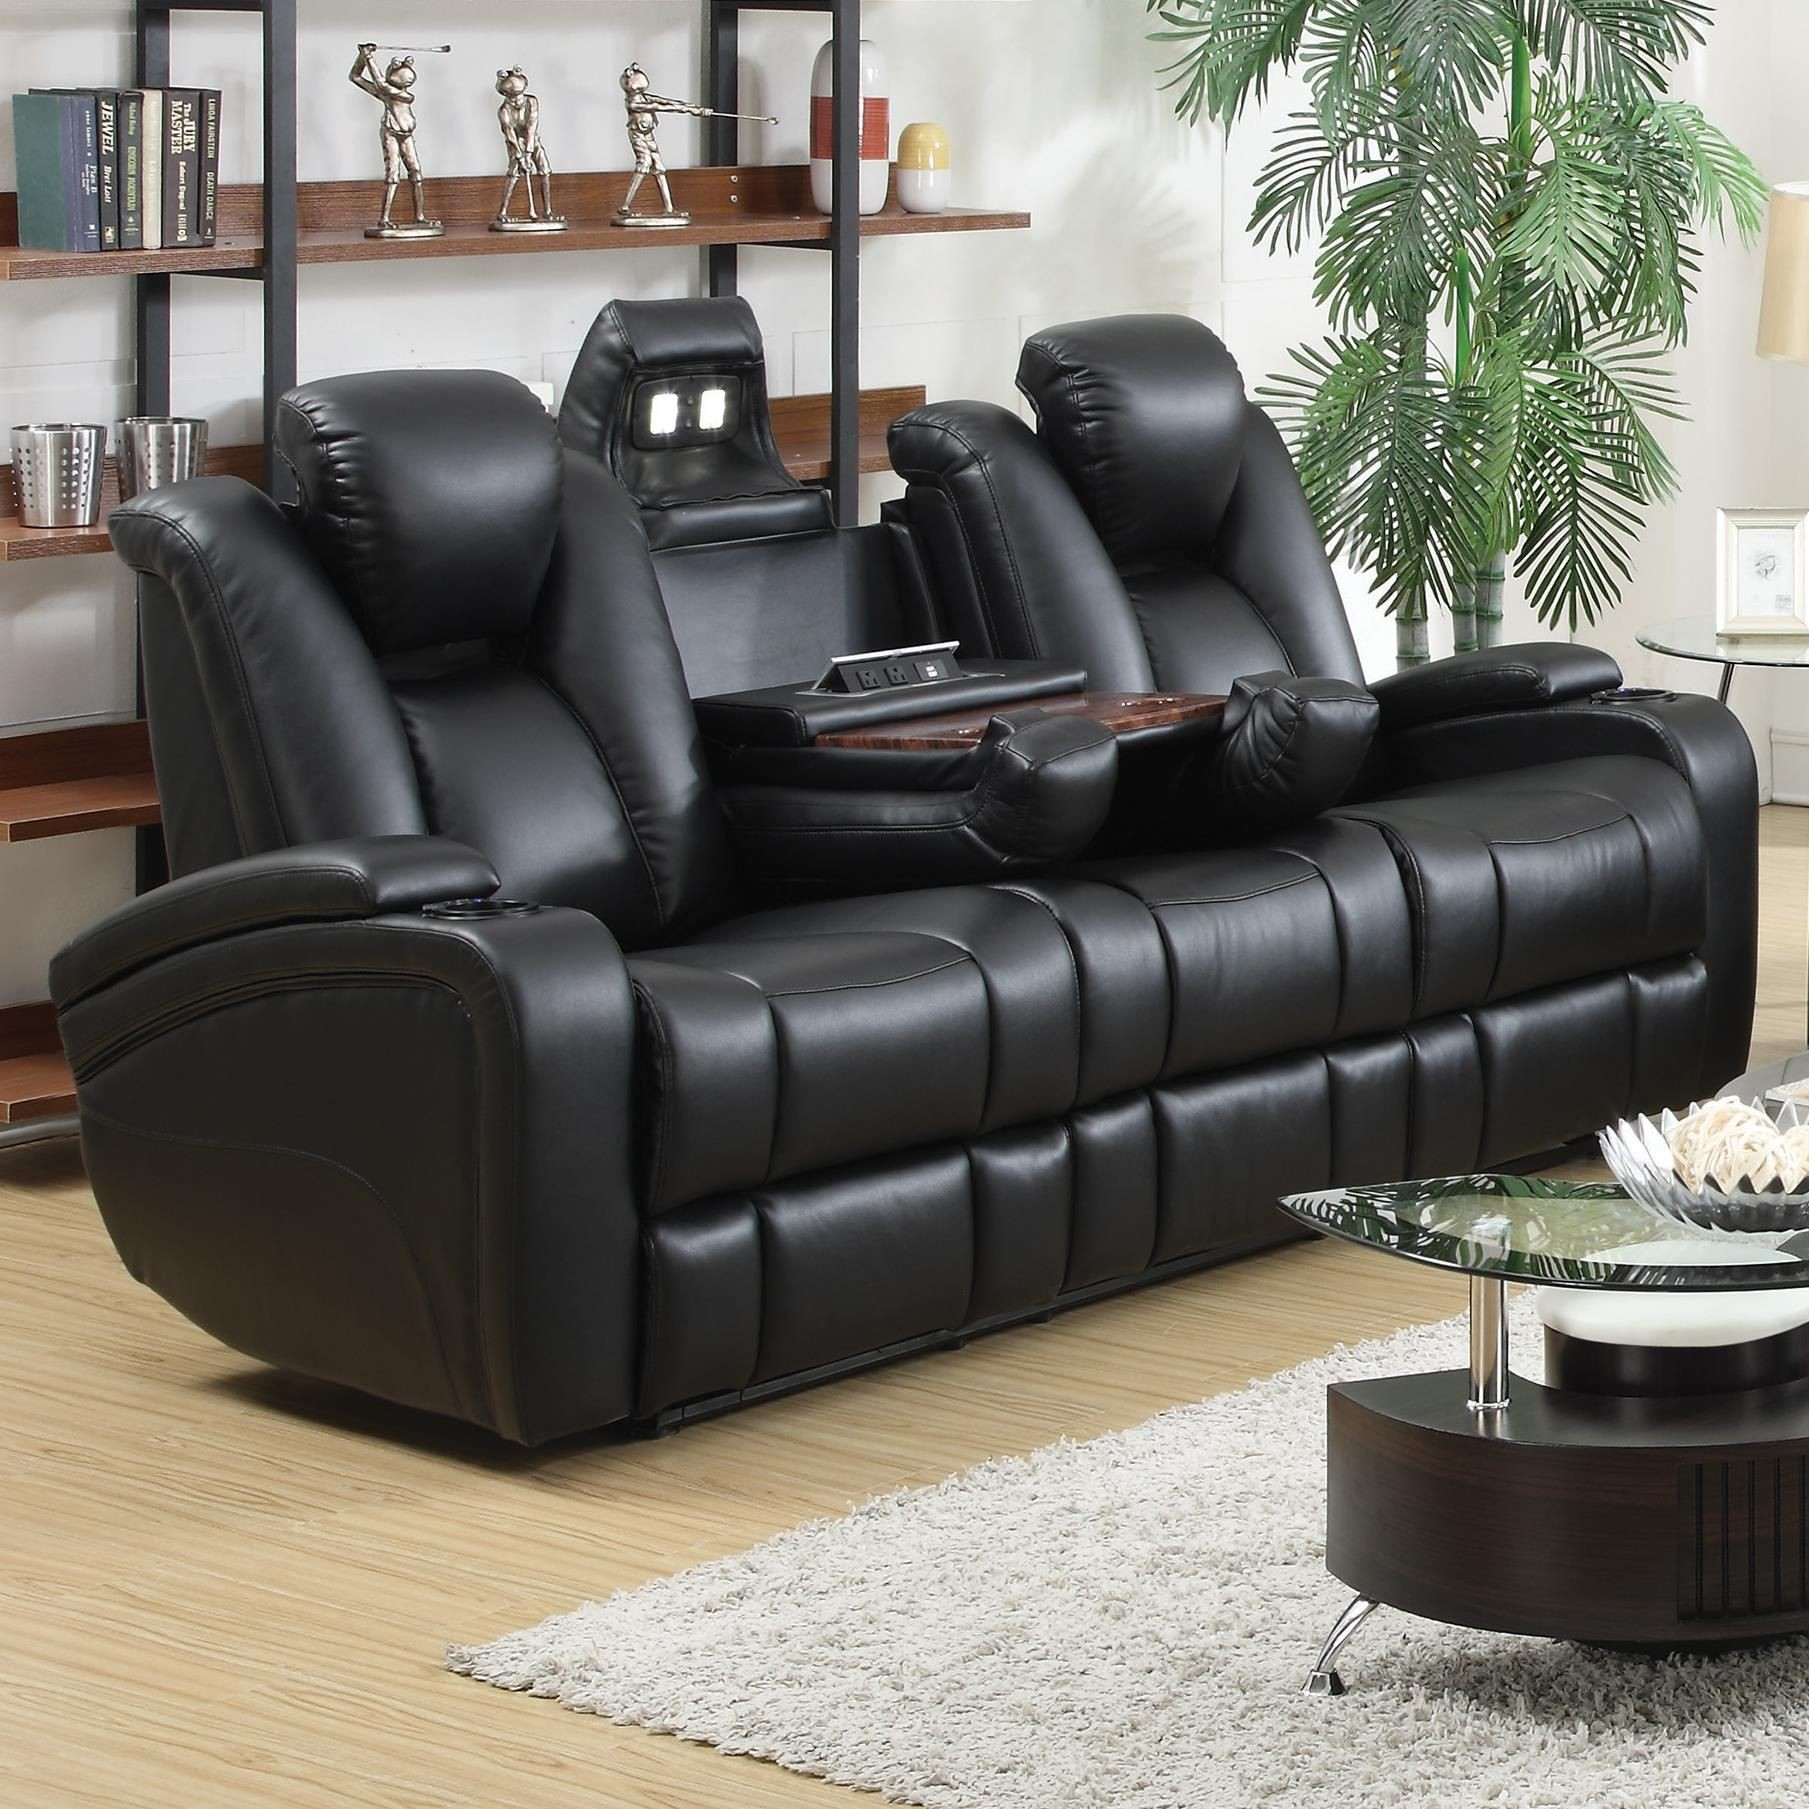 Delange Power Reclining Sofa. Coaster Furniture. Delange Power Reclining Sofa796148. 604853 & Delange Power Reclining Sofa from Coaster (601741P) | Coleman ... islam-shia.org